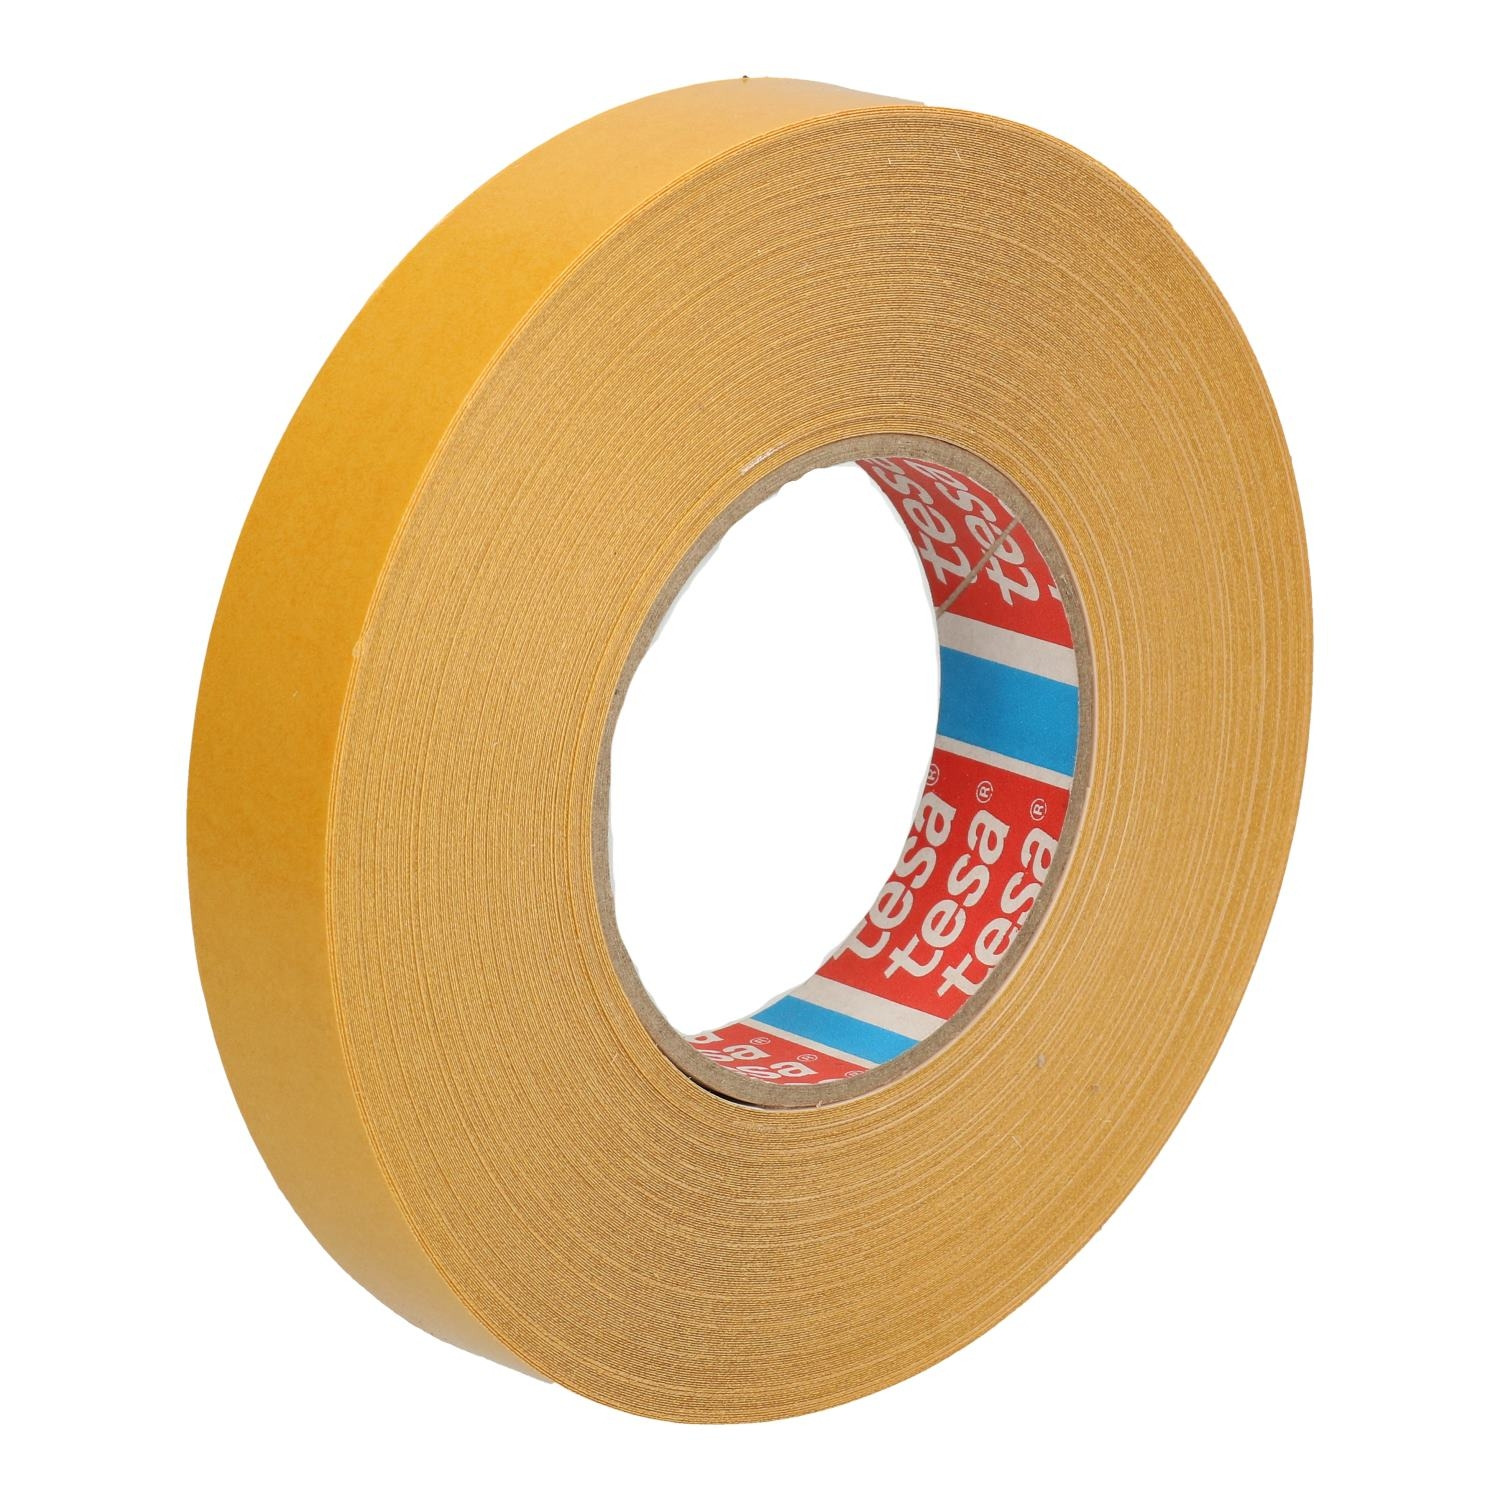 Tesa® tape dubbelzijdig pvc wit 4970 25 mm x 50 m